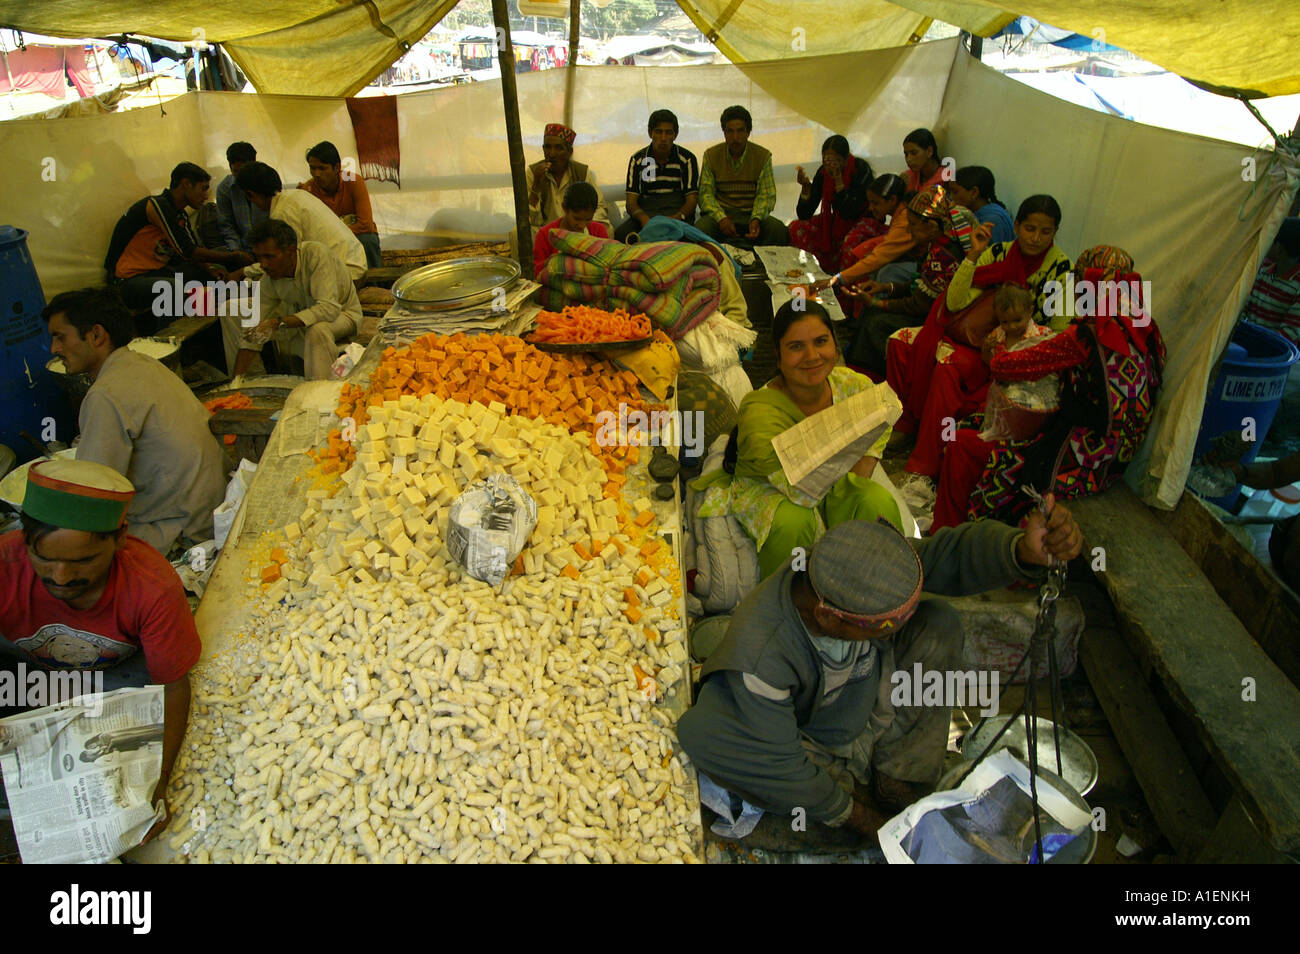 Stall with sweets at Dussehra fair with enormous variety of rich Indian cuisine meals, Kullu, India - Stock Image